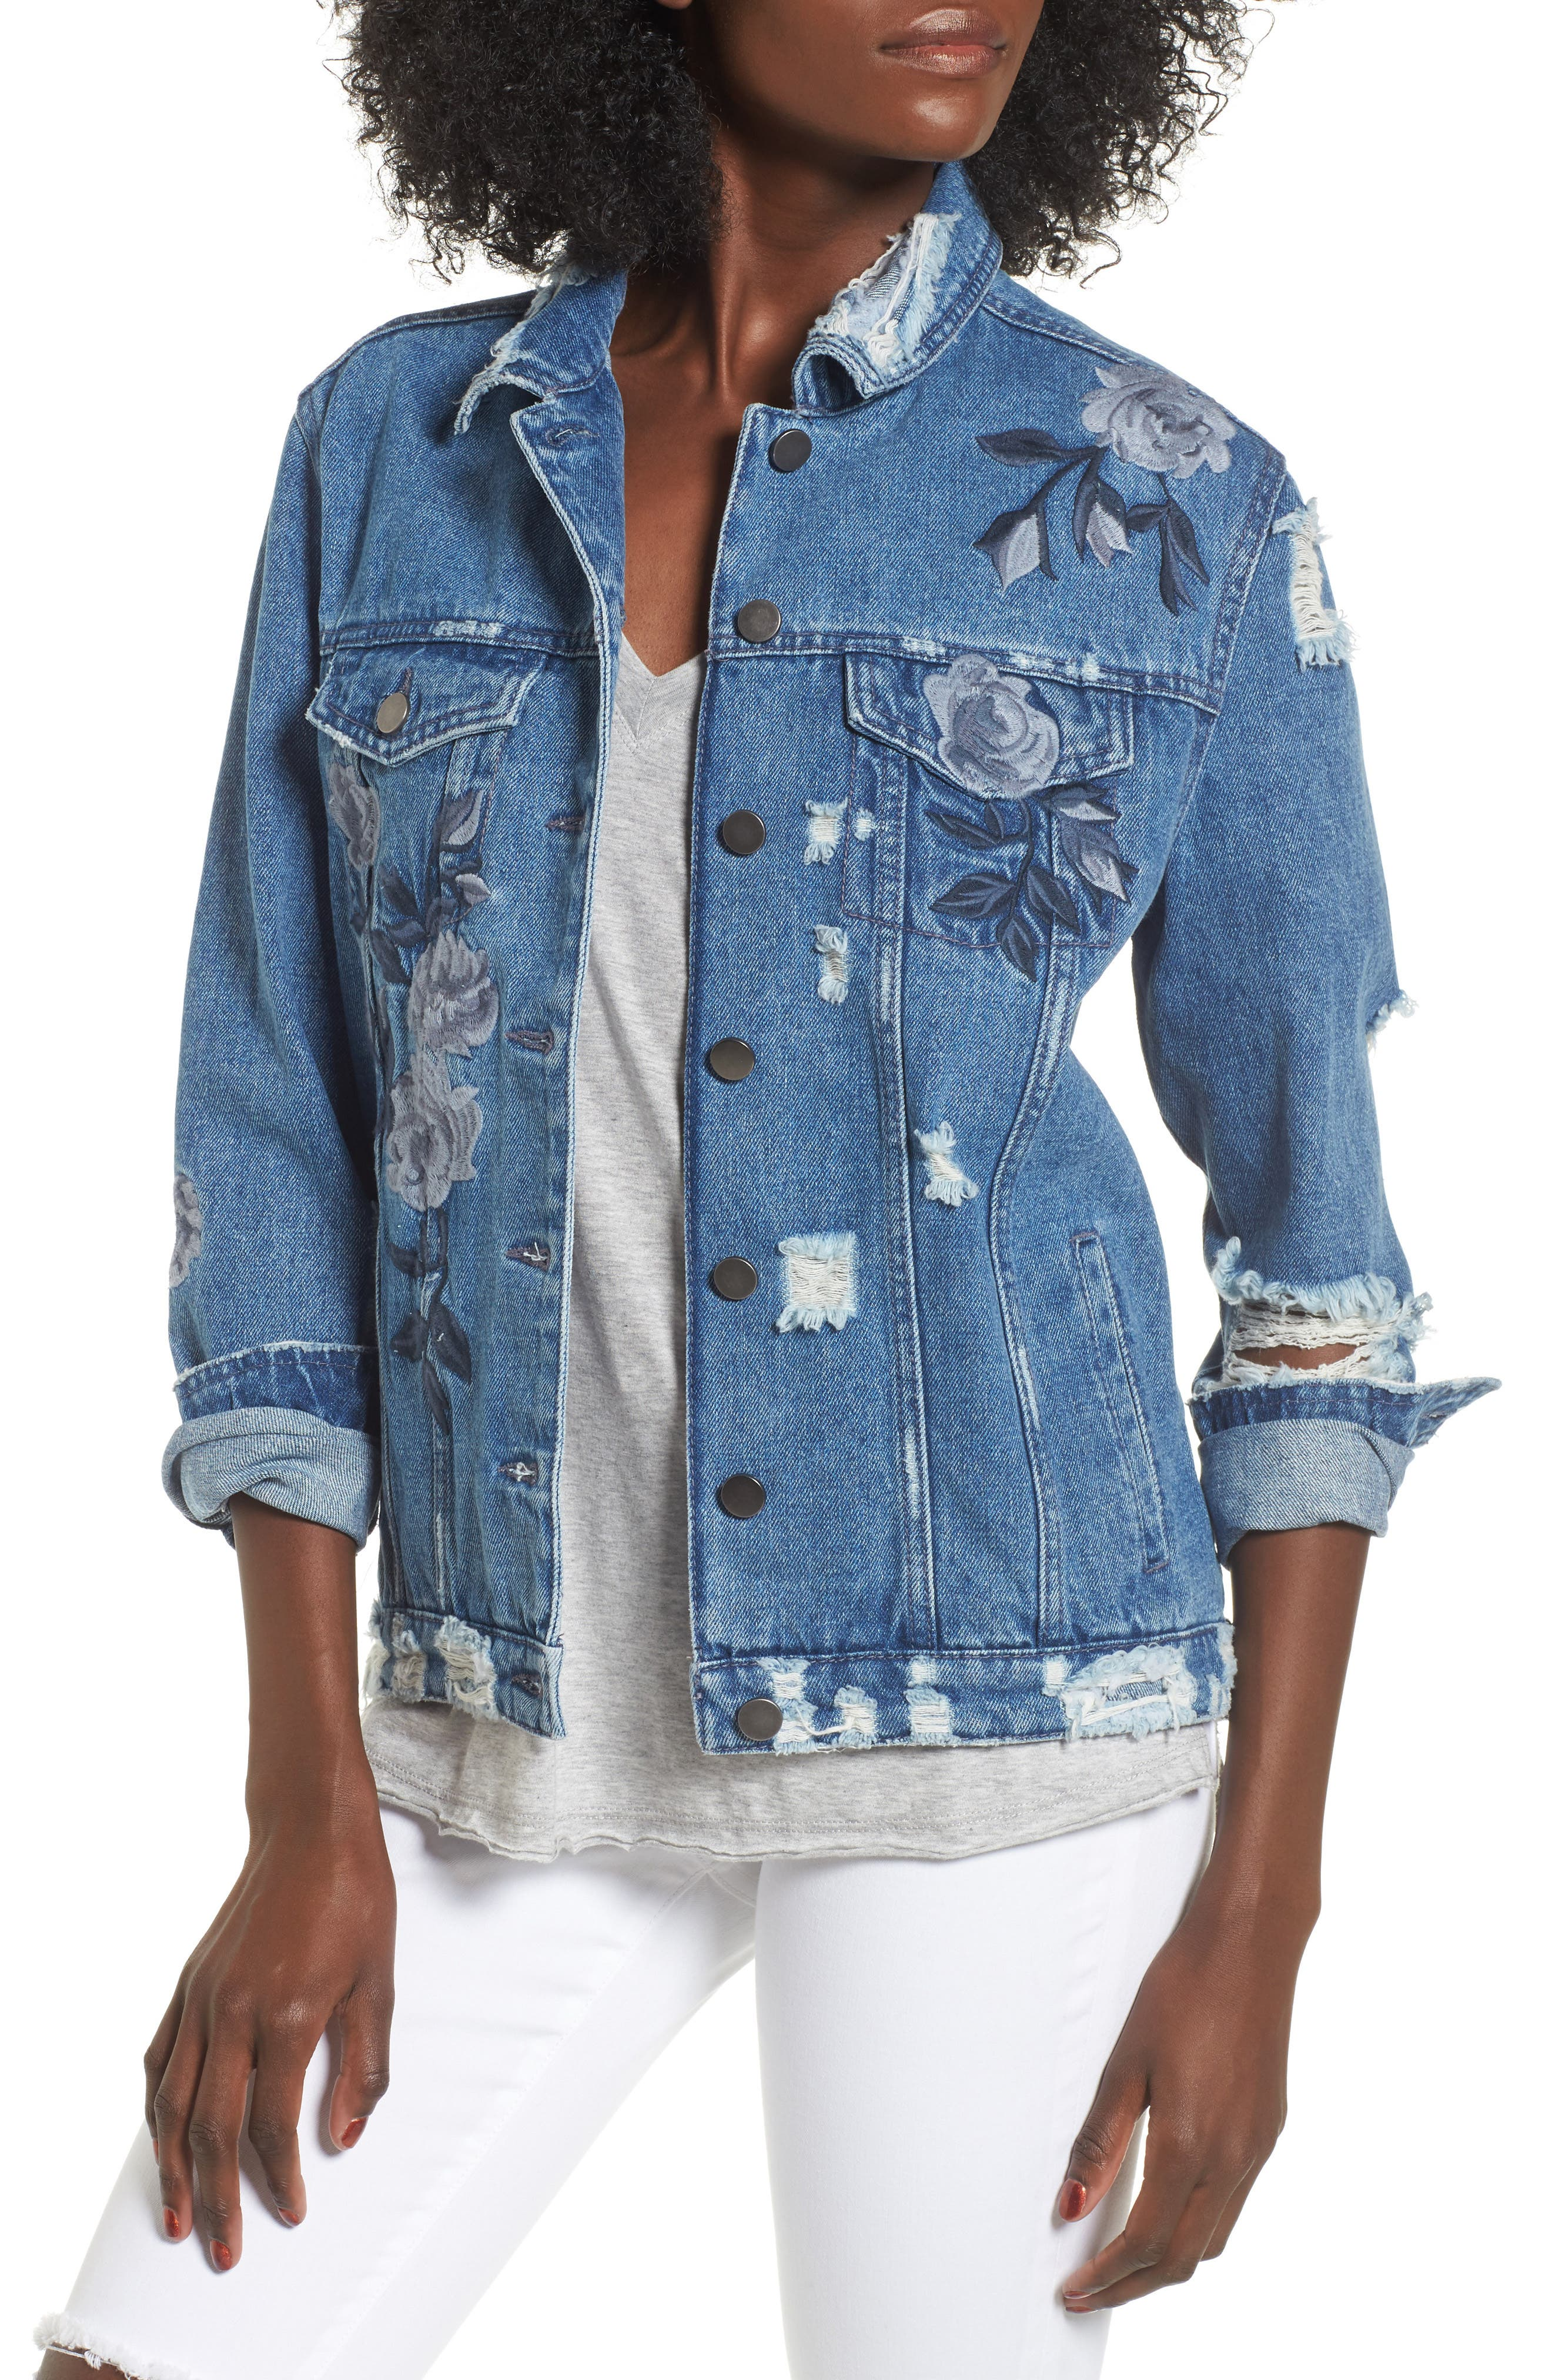 Main Image - Love, Fire Floral Embroidered Ripped Denim Jacket